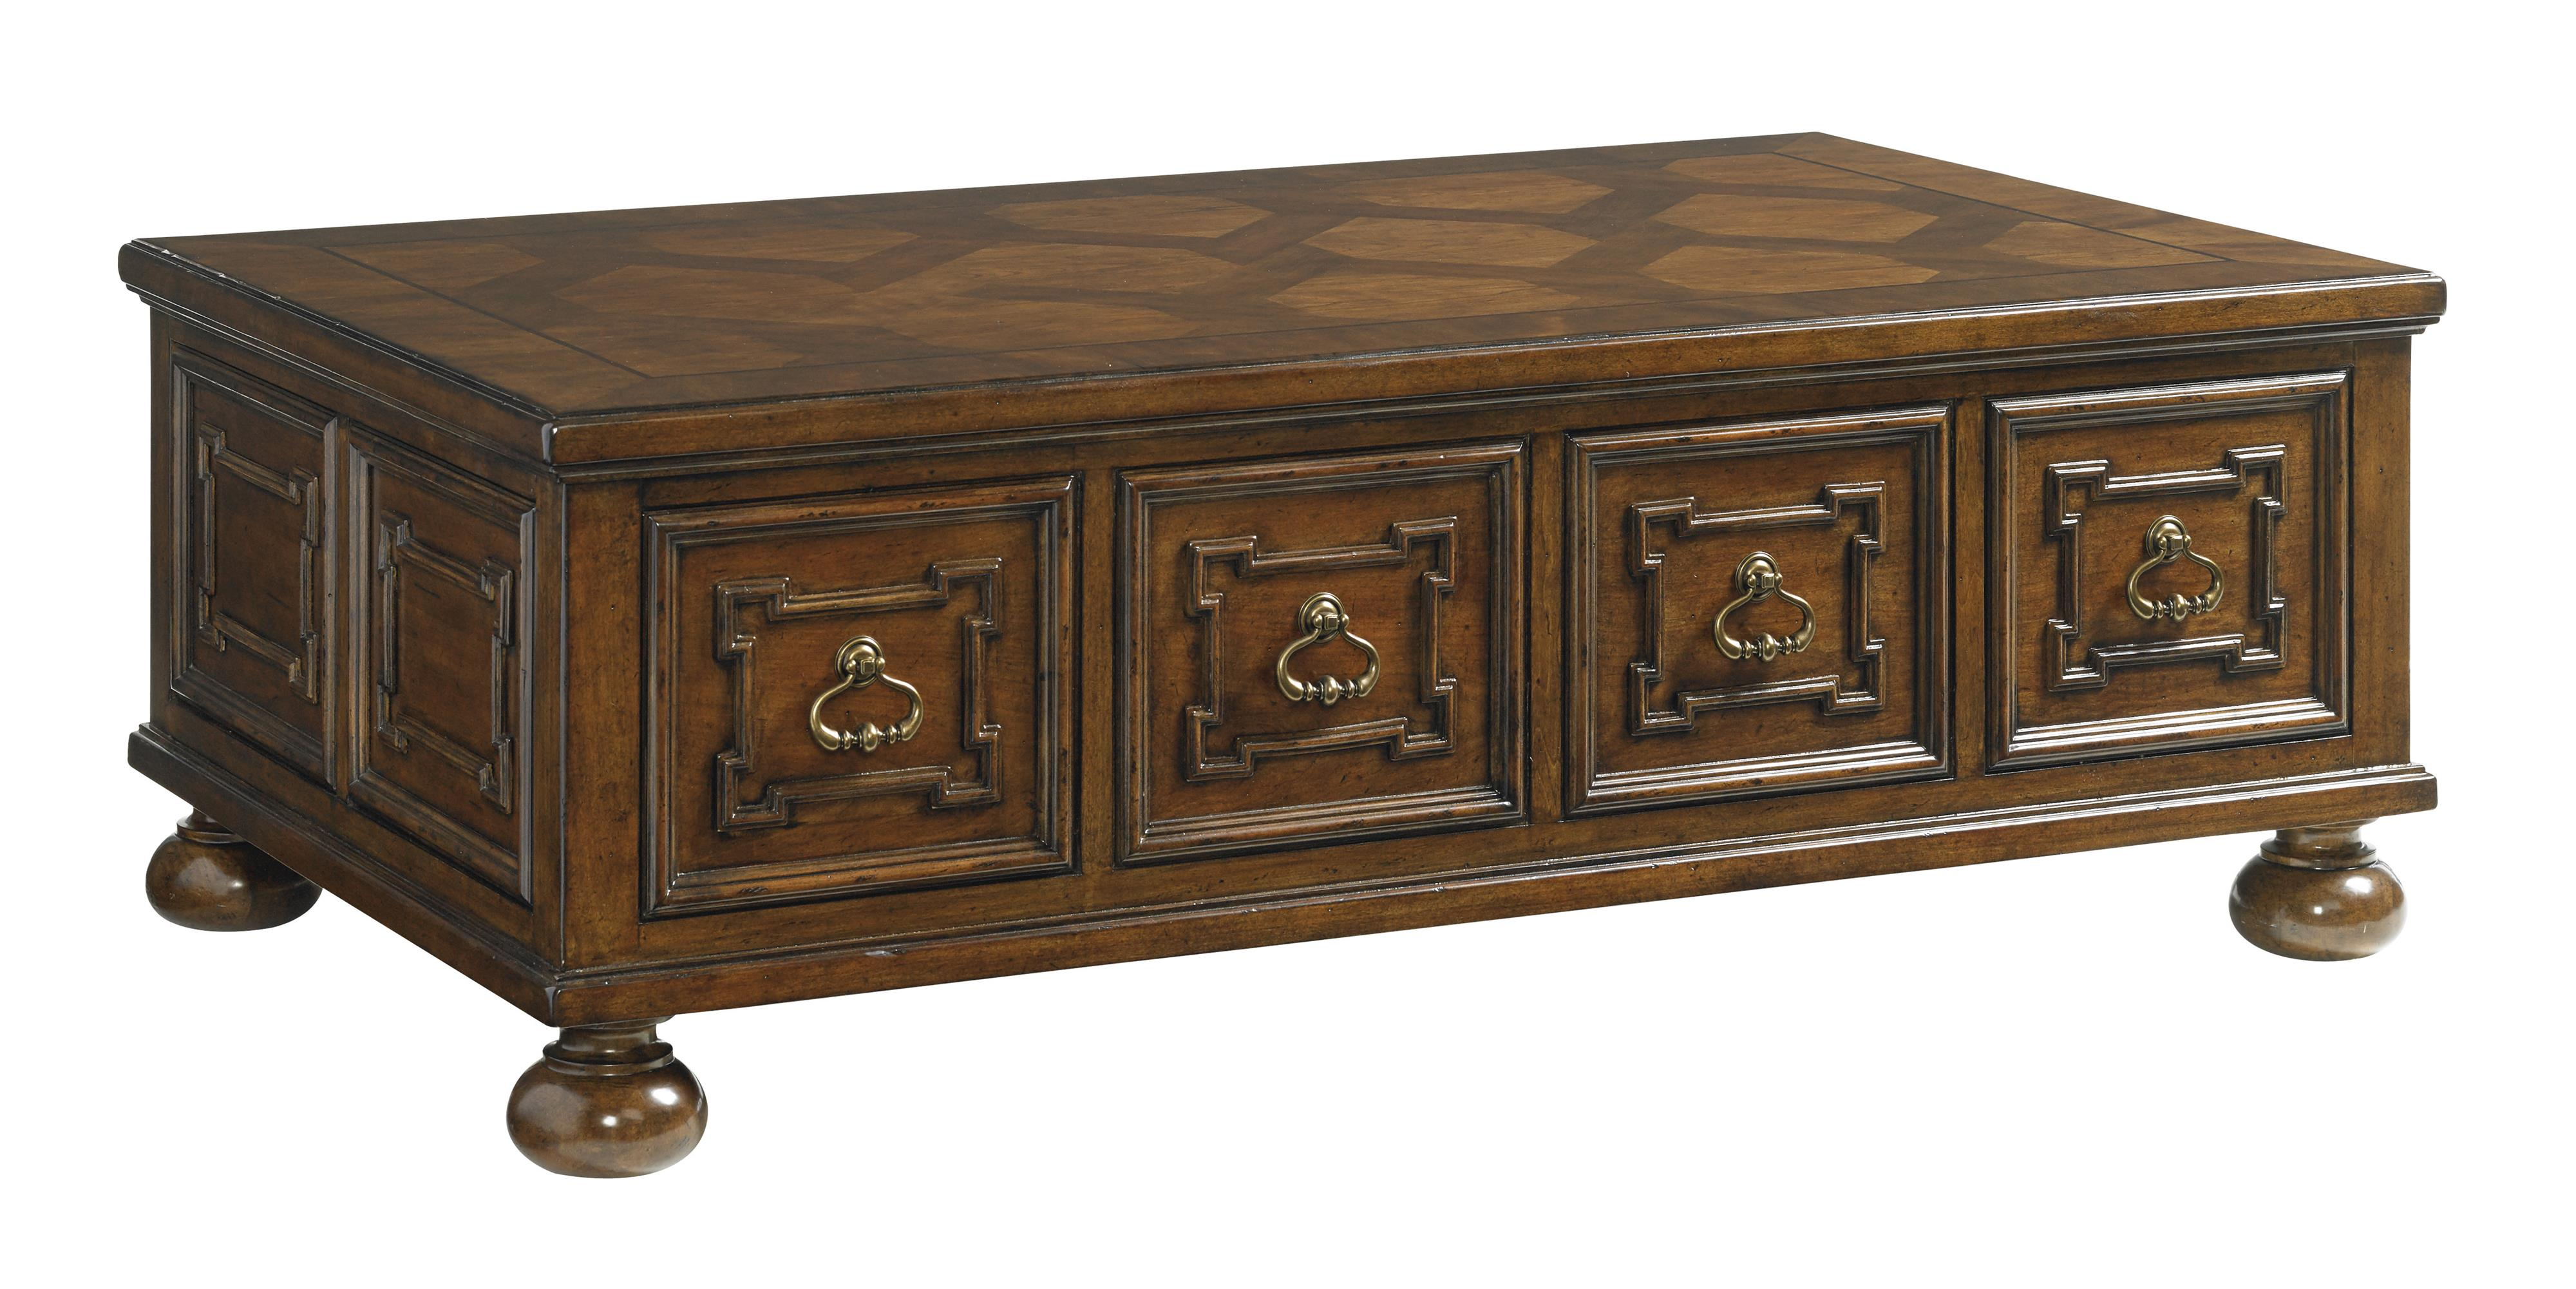 Lexington Coventry Hills Pine Valley Storage Cocktail Table - Item Number: 945-943